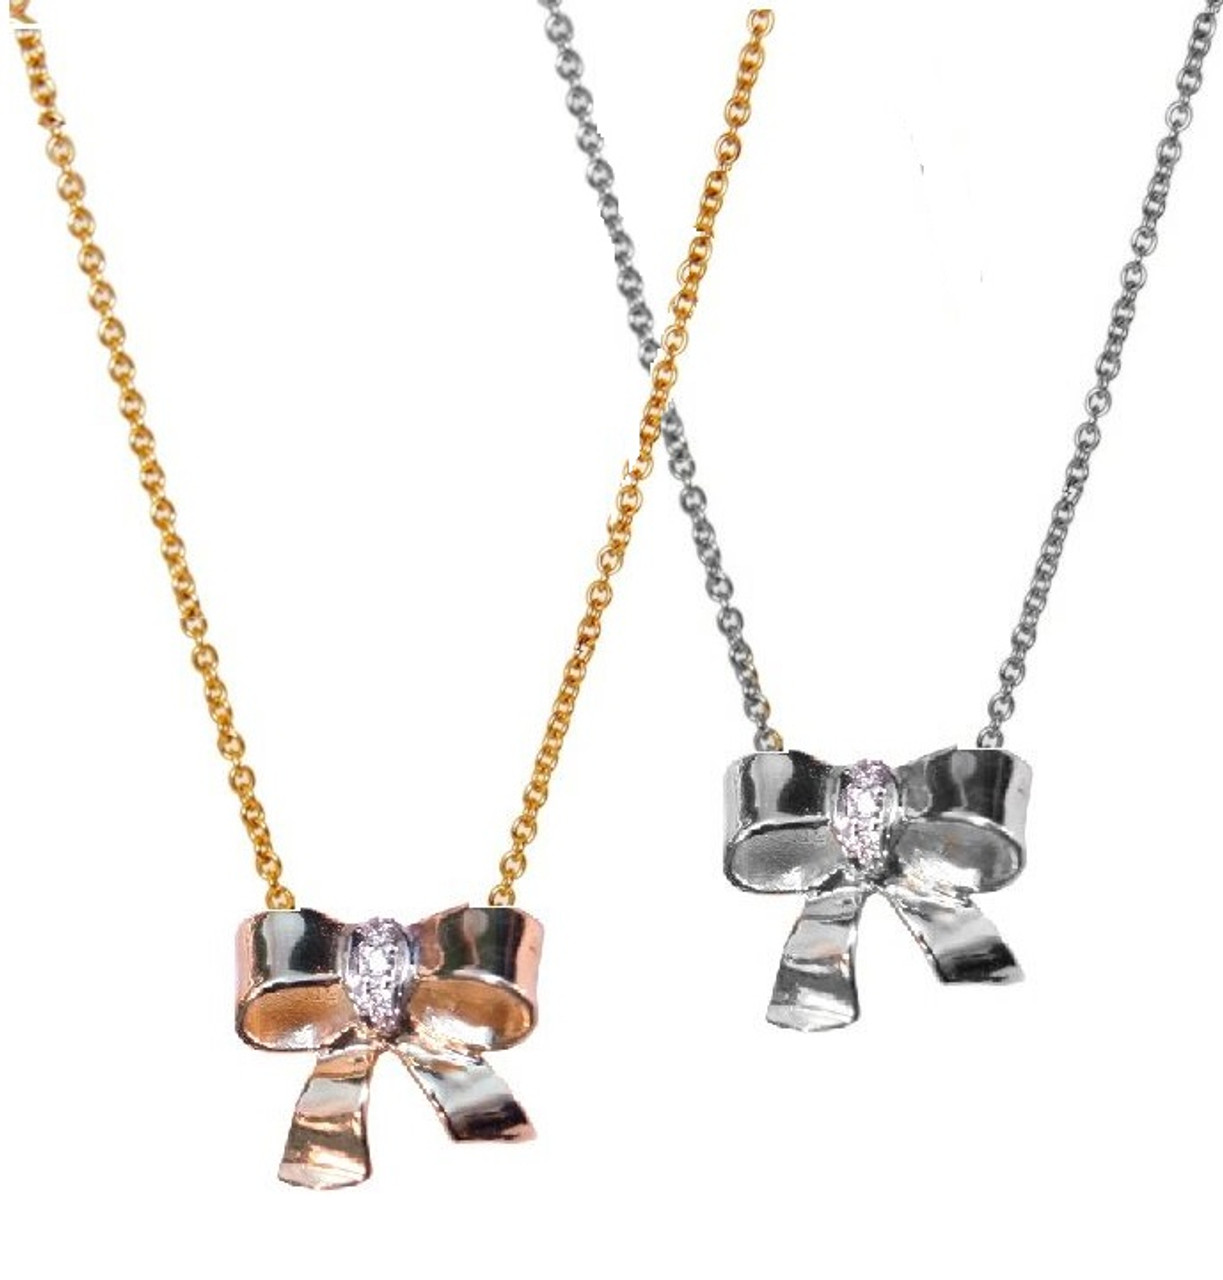 Bow Necklace-Sterling Silver with diamonds on simple chain- Plate options